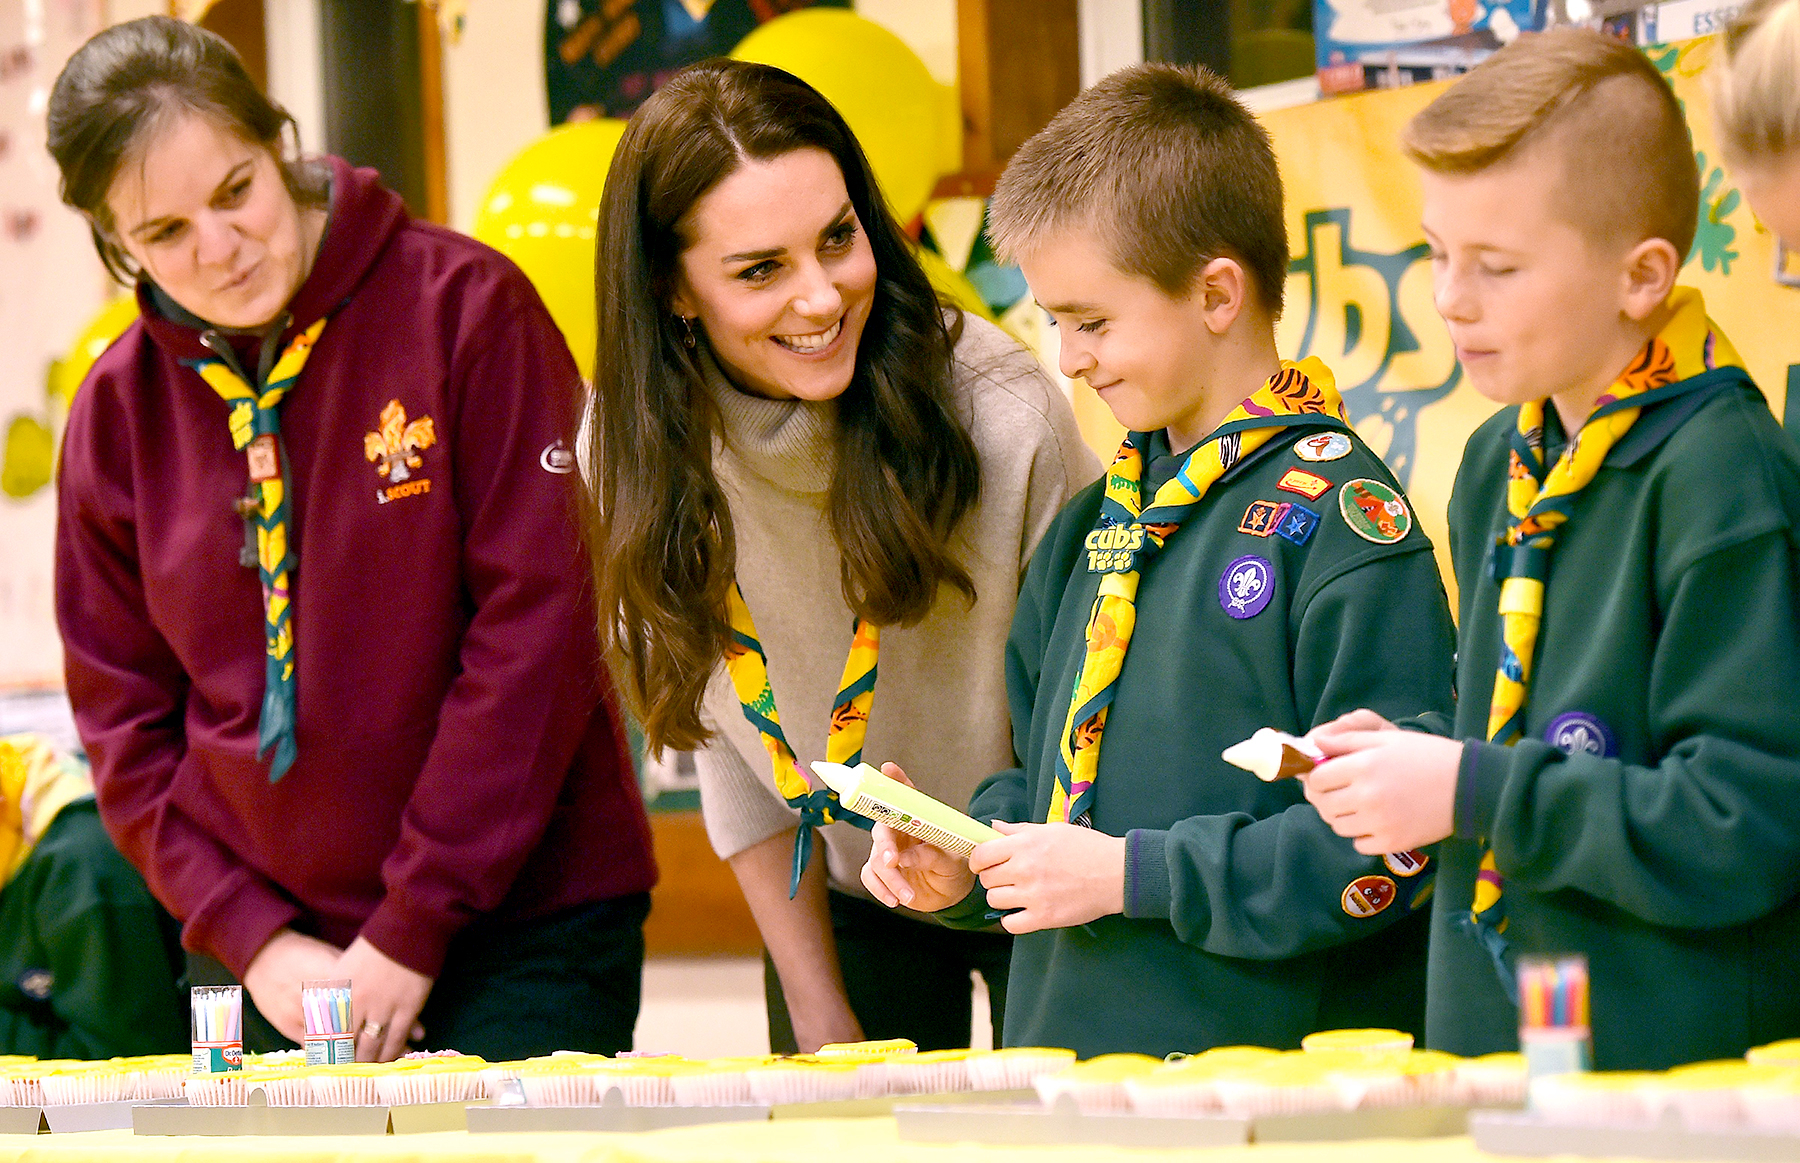 Britain's Catherine, Duchess of Cambridge (2L), ices cupcakes during a Cub Scout Pack meeting with cubs from the Kings Lynn District, in Kings Lynn, eastern England, on December 14, 2016, to celebrate 100 years of Cubs. The Duchess attended a special Cub Scout Pack meeting with Cubs from the Kings Lynn District to celebrate 100 years of Cubs. Cub Scouting was co-founded by Robert Baden-Powell and Vera Barclay on the 16th December 2016.